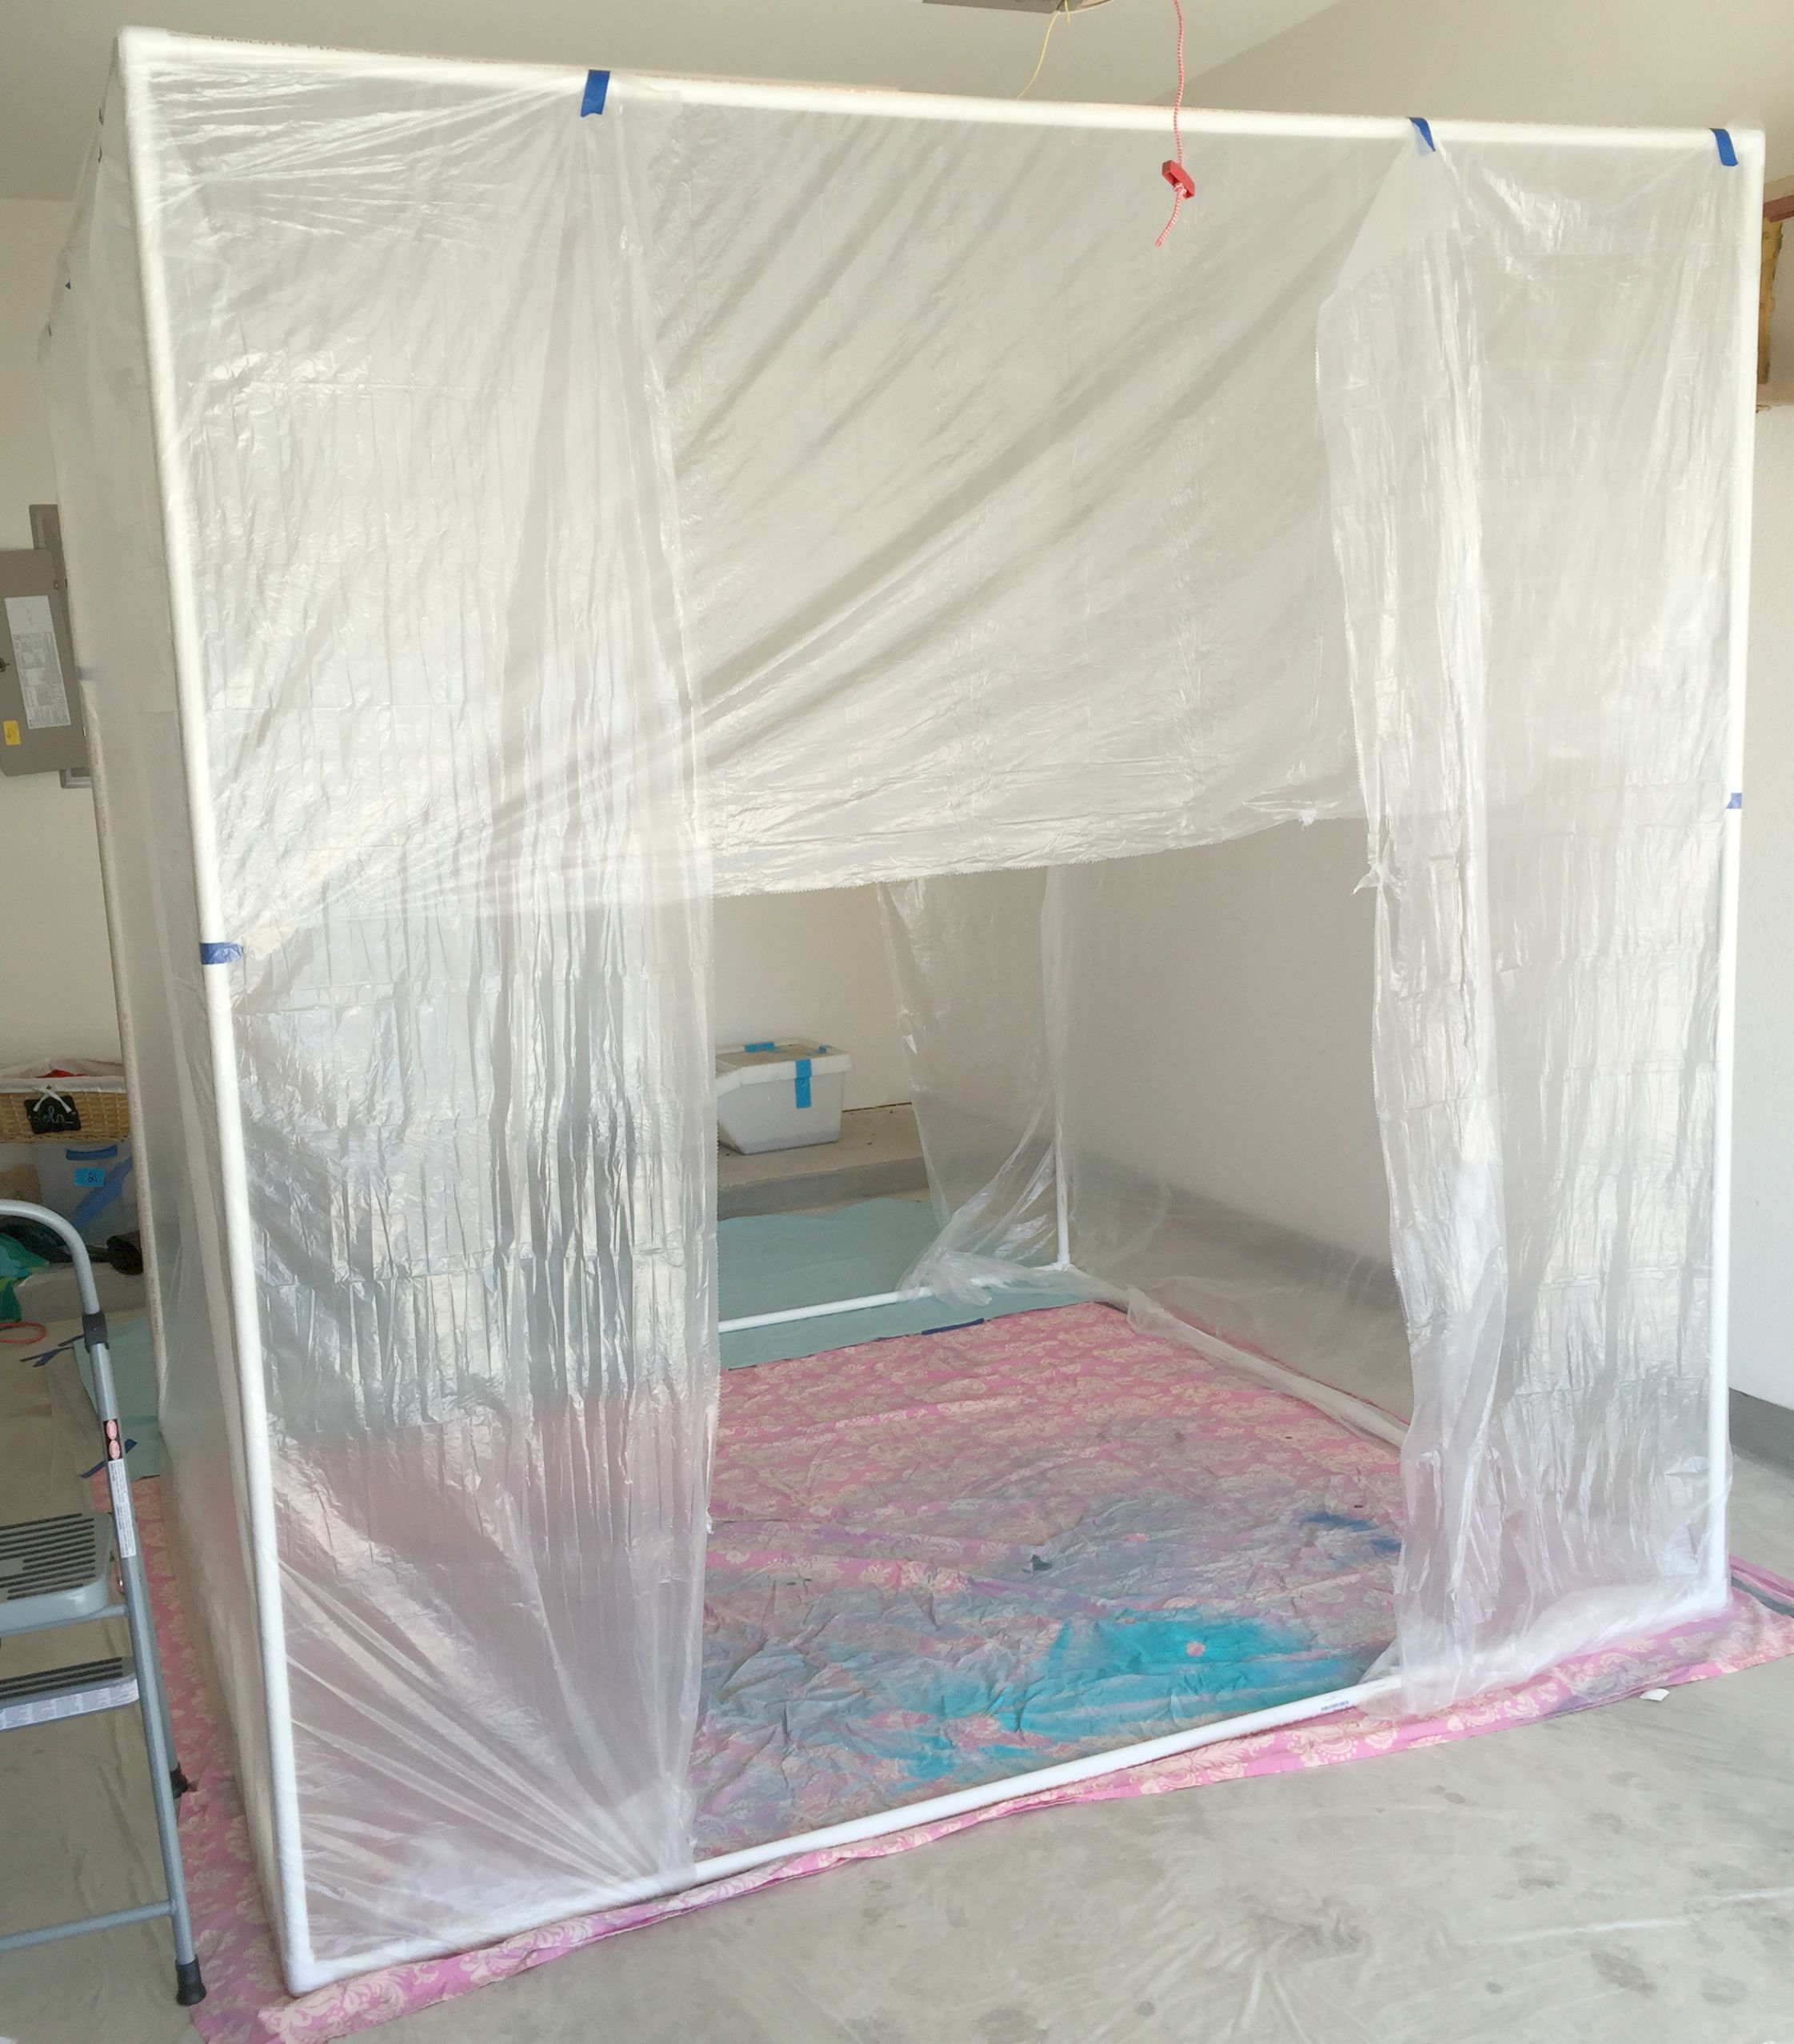 How to Create a Spray Paint Booth Everything you see, I